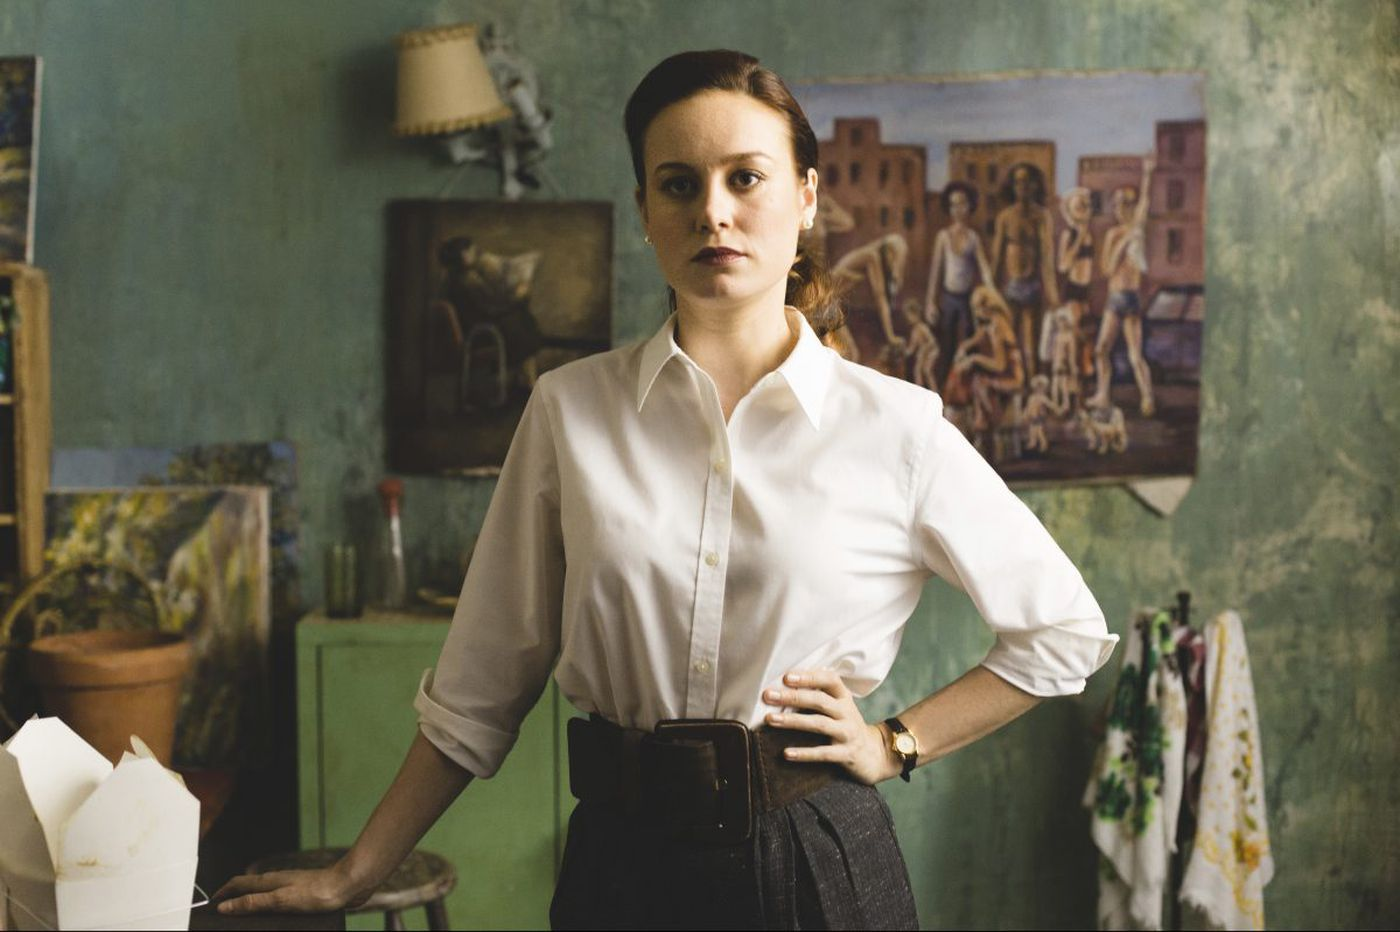 Not to throw stones, but 'Glass Castle' is not as good as the book